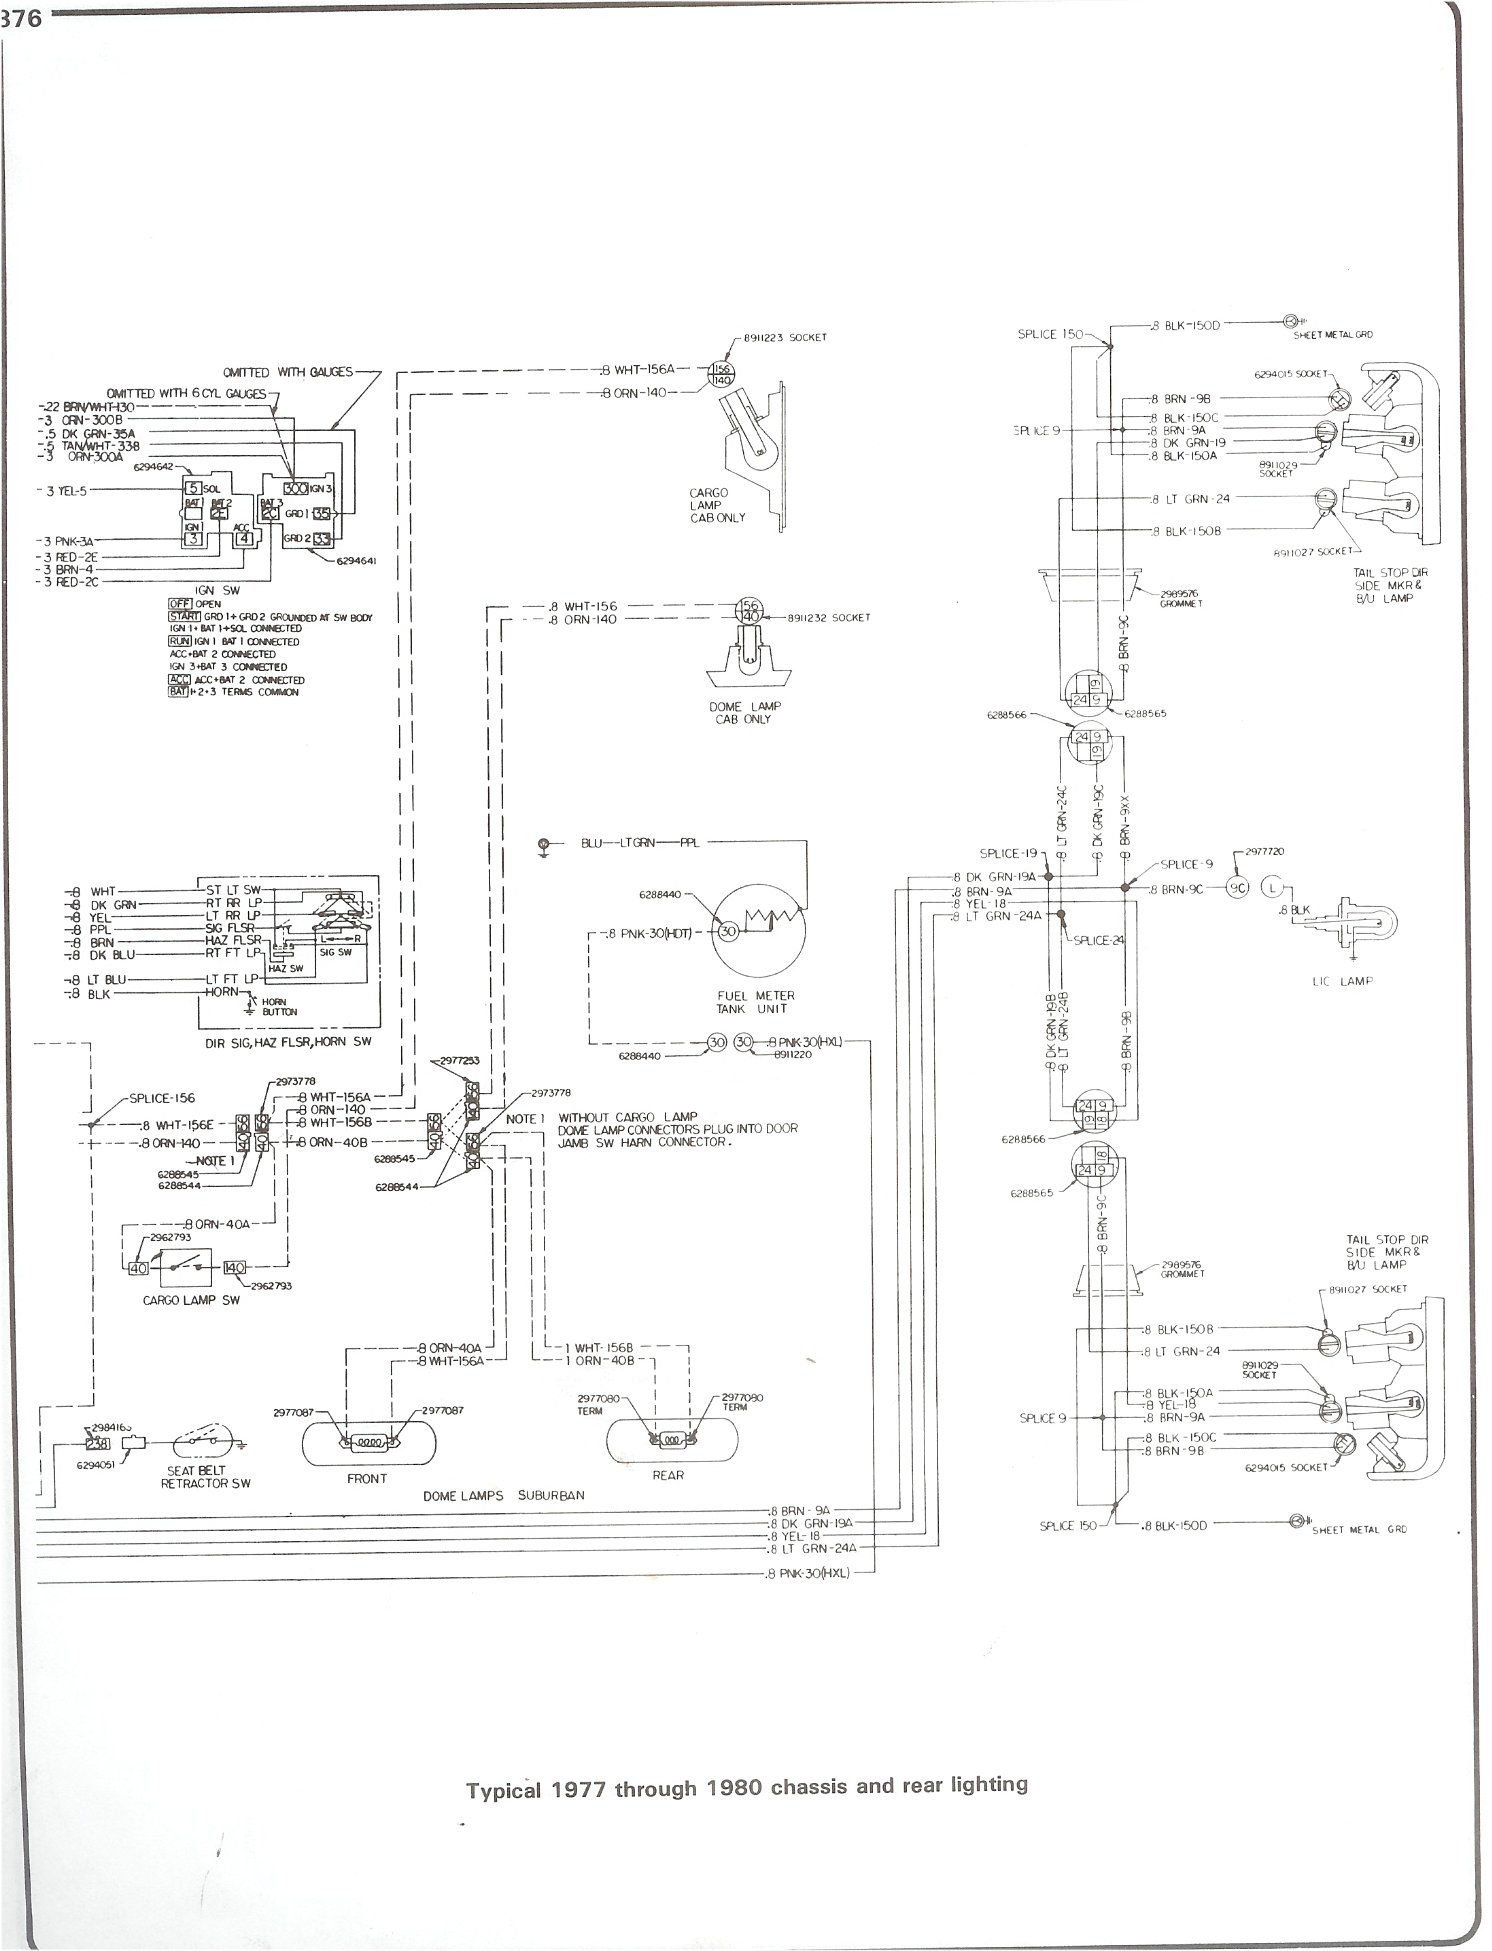 77 80_chass_rr_light complete 73 87 wiring diagrams 2008 Chevy Silverado Wiring Diagram at panicattacktreatment.co